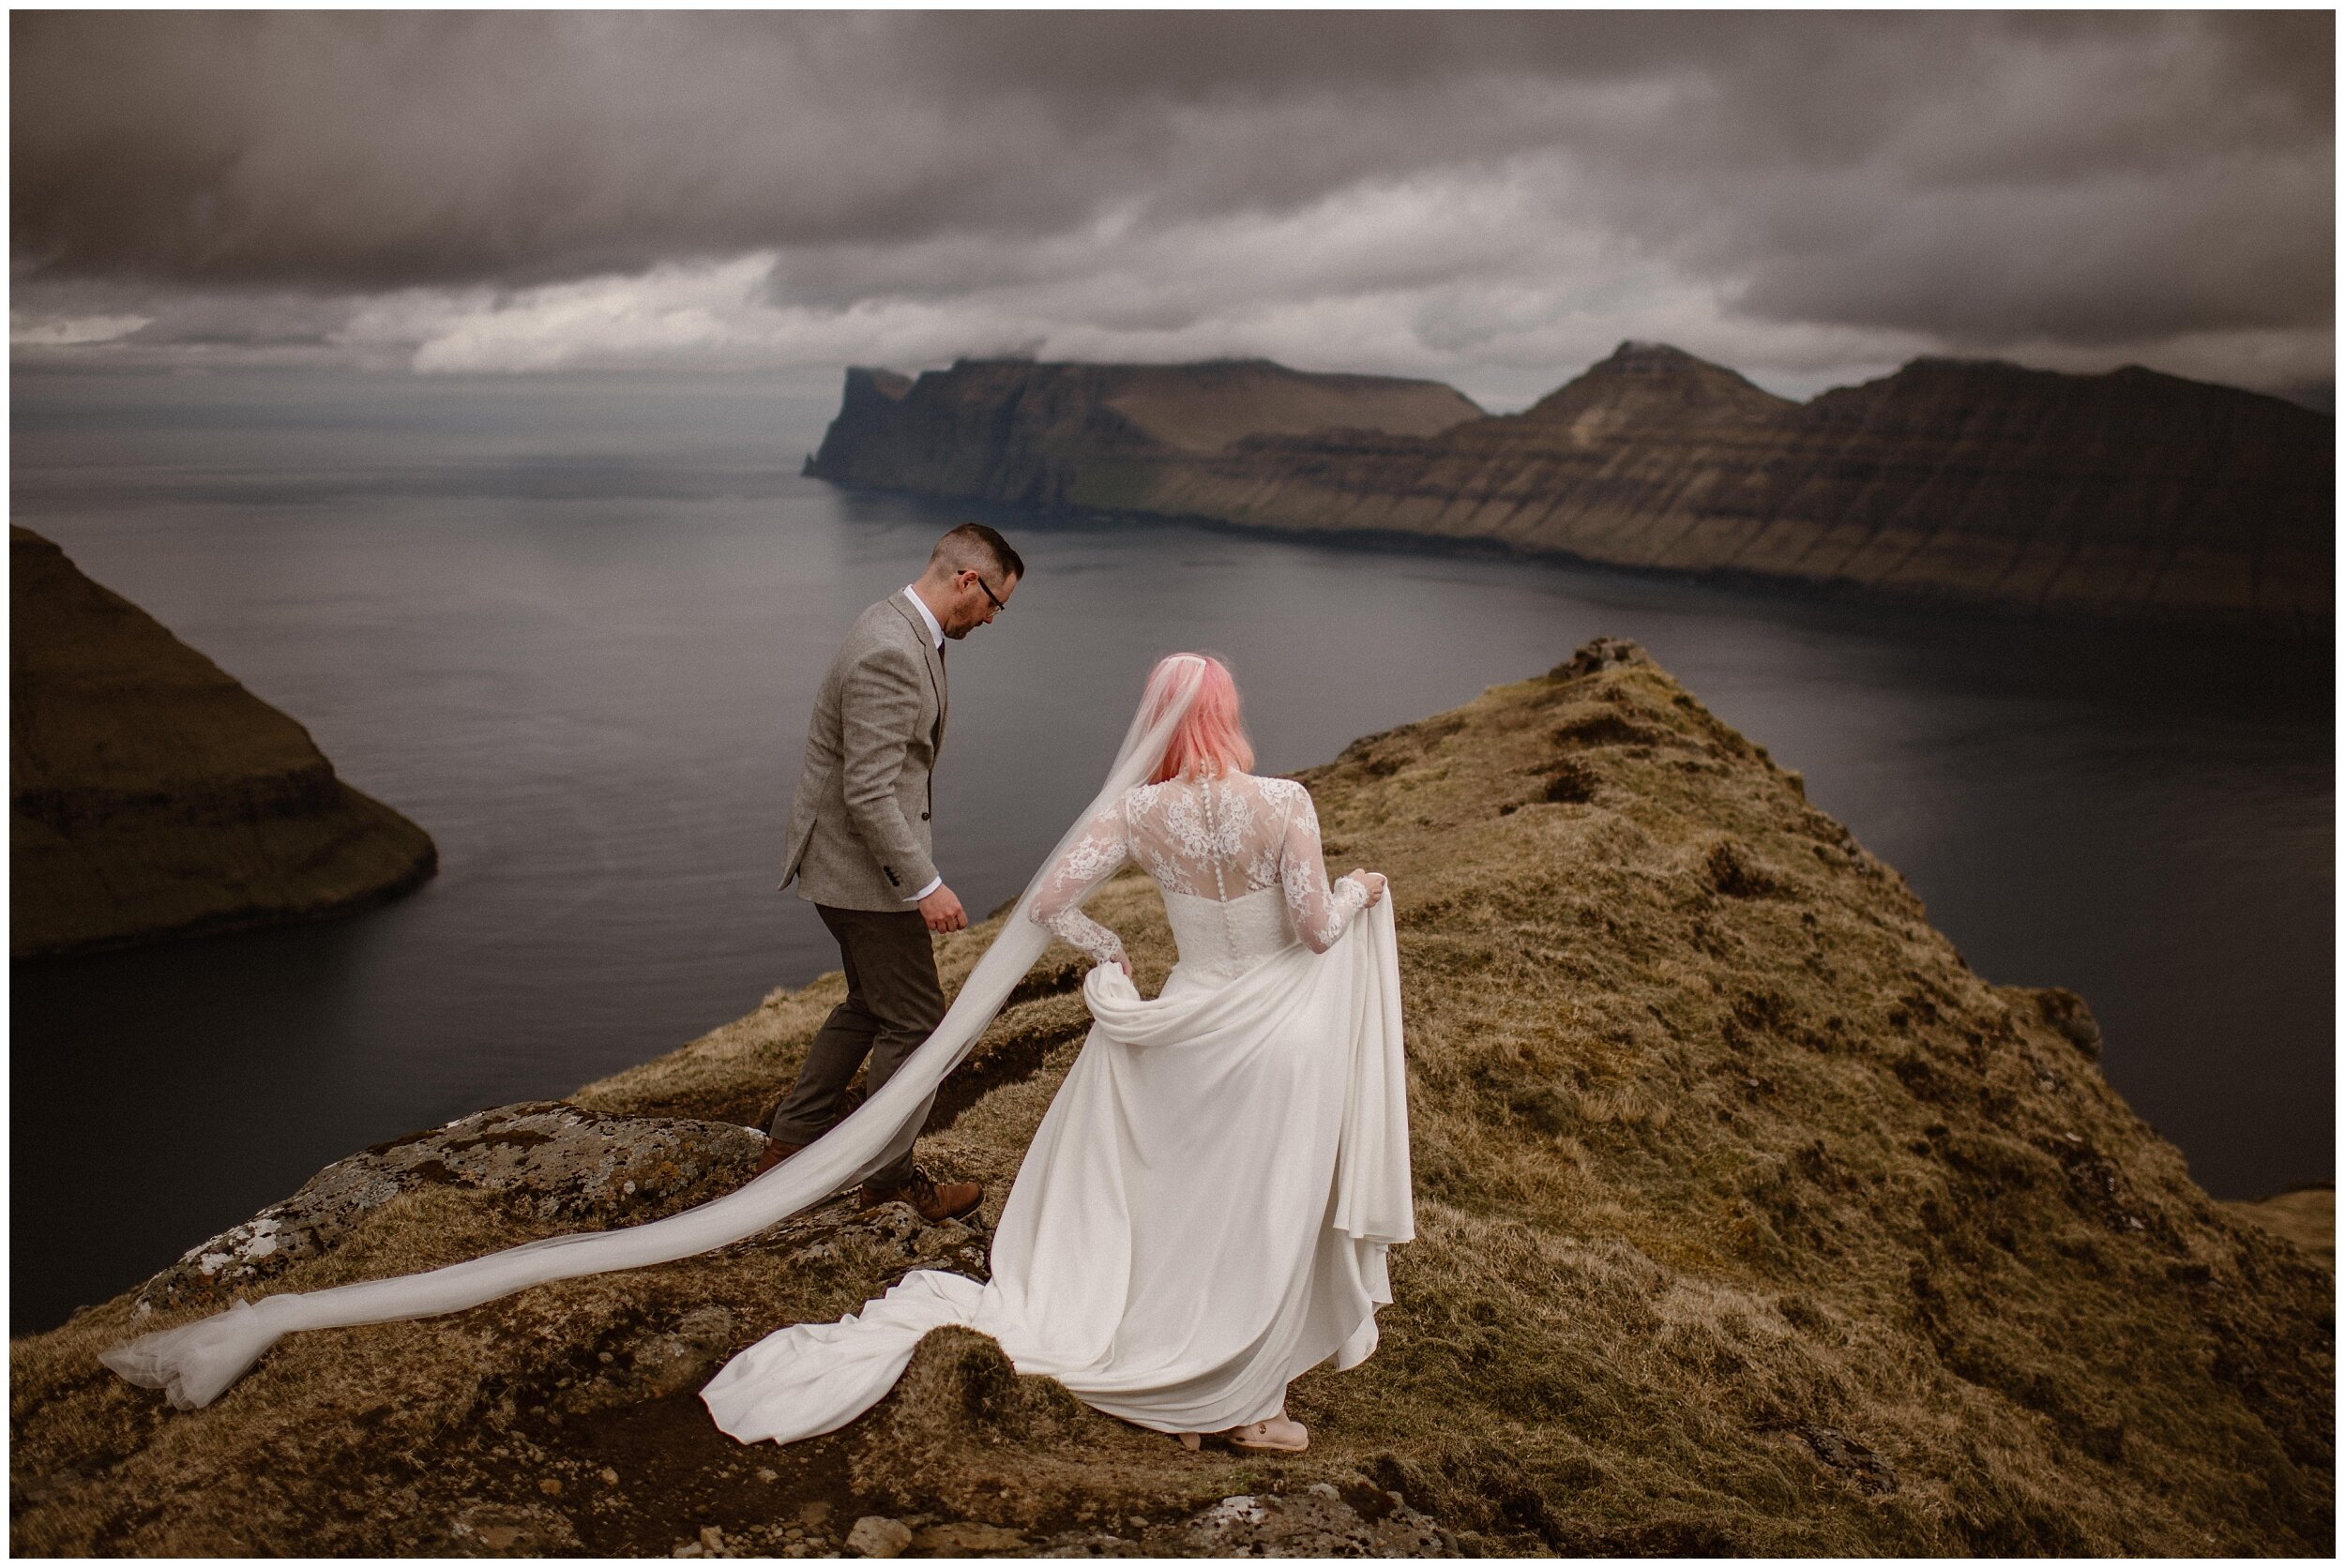 The bride and groom carefuly step out on the path toward the edge of a cliff overlooking a gorgeous Faroe Island fjord and waterscape. Elaura, the bride, lifts her custom-made wedding dress to reveal her pastel pink hiking boots. These adventure elopement photos were captured by Adventure Instead, an elopement wedding photographer.